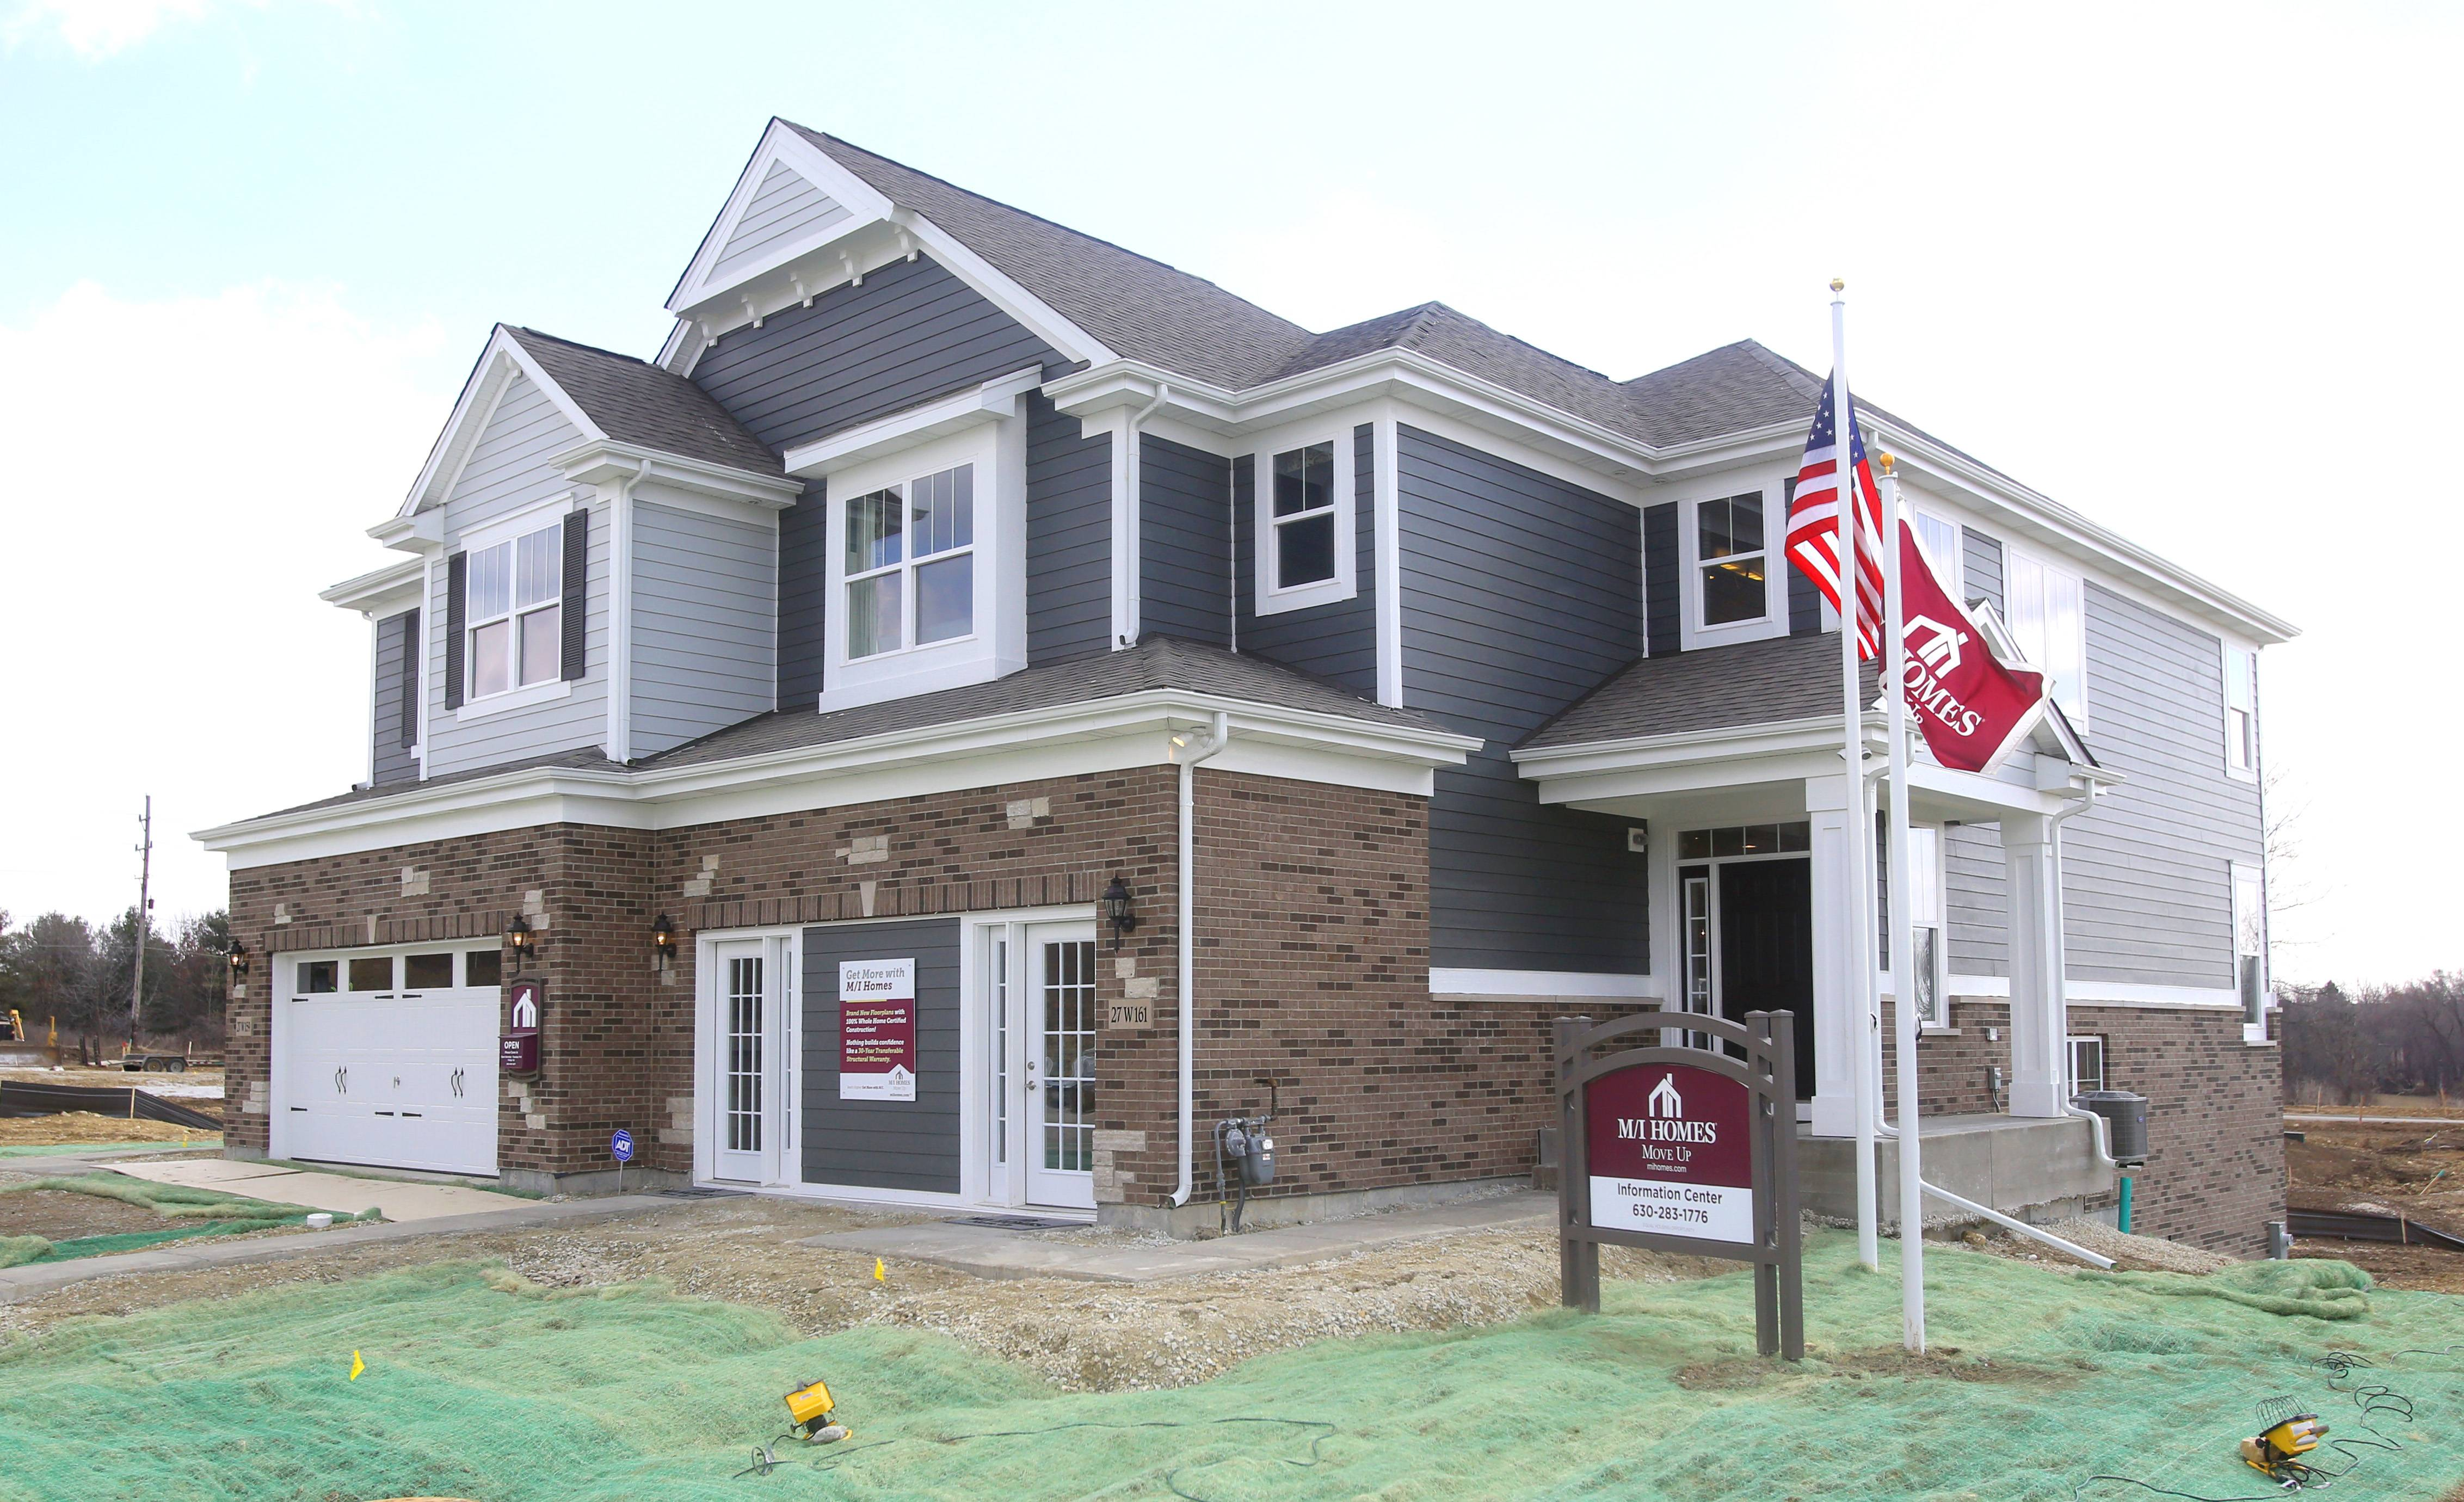 The Columbus is a new model home at Herrick Woods, a townhouse development by M/I Homes in Warrenville.